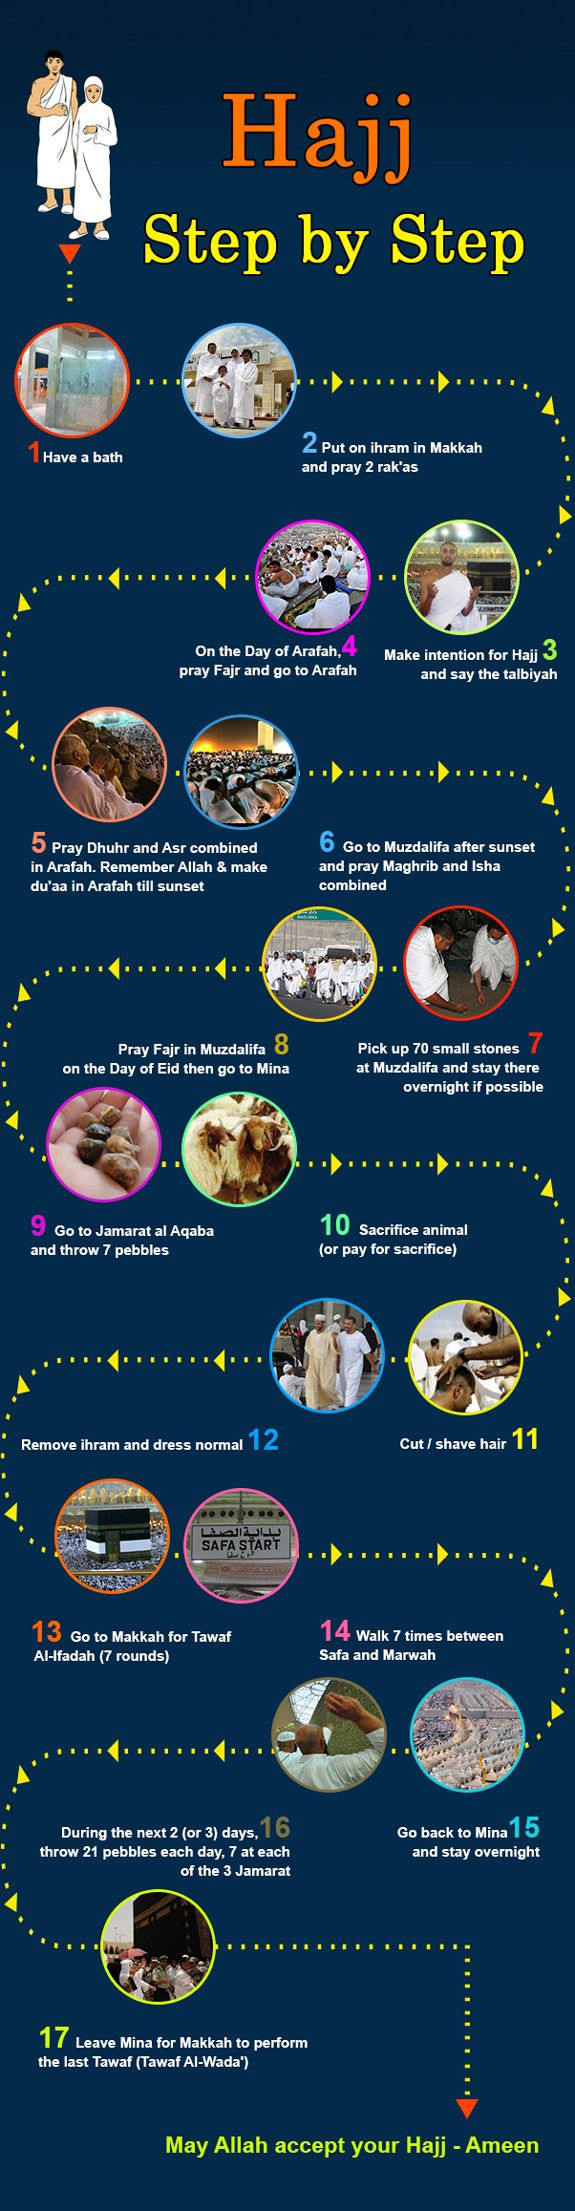 Inshallah! Hajj Step by Step (Infographic) - Reading Islam - Infographics - OnIslam.net